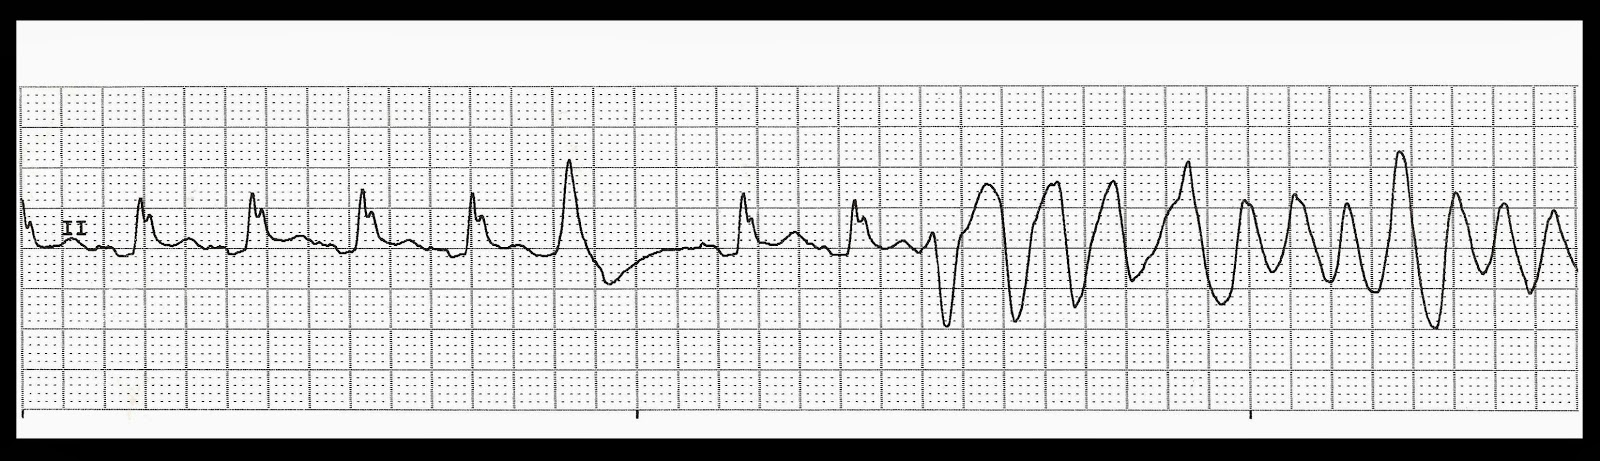 Normal sinus rhythm changing to polymorphic ventricular tachycardia